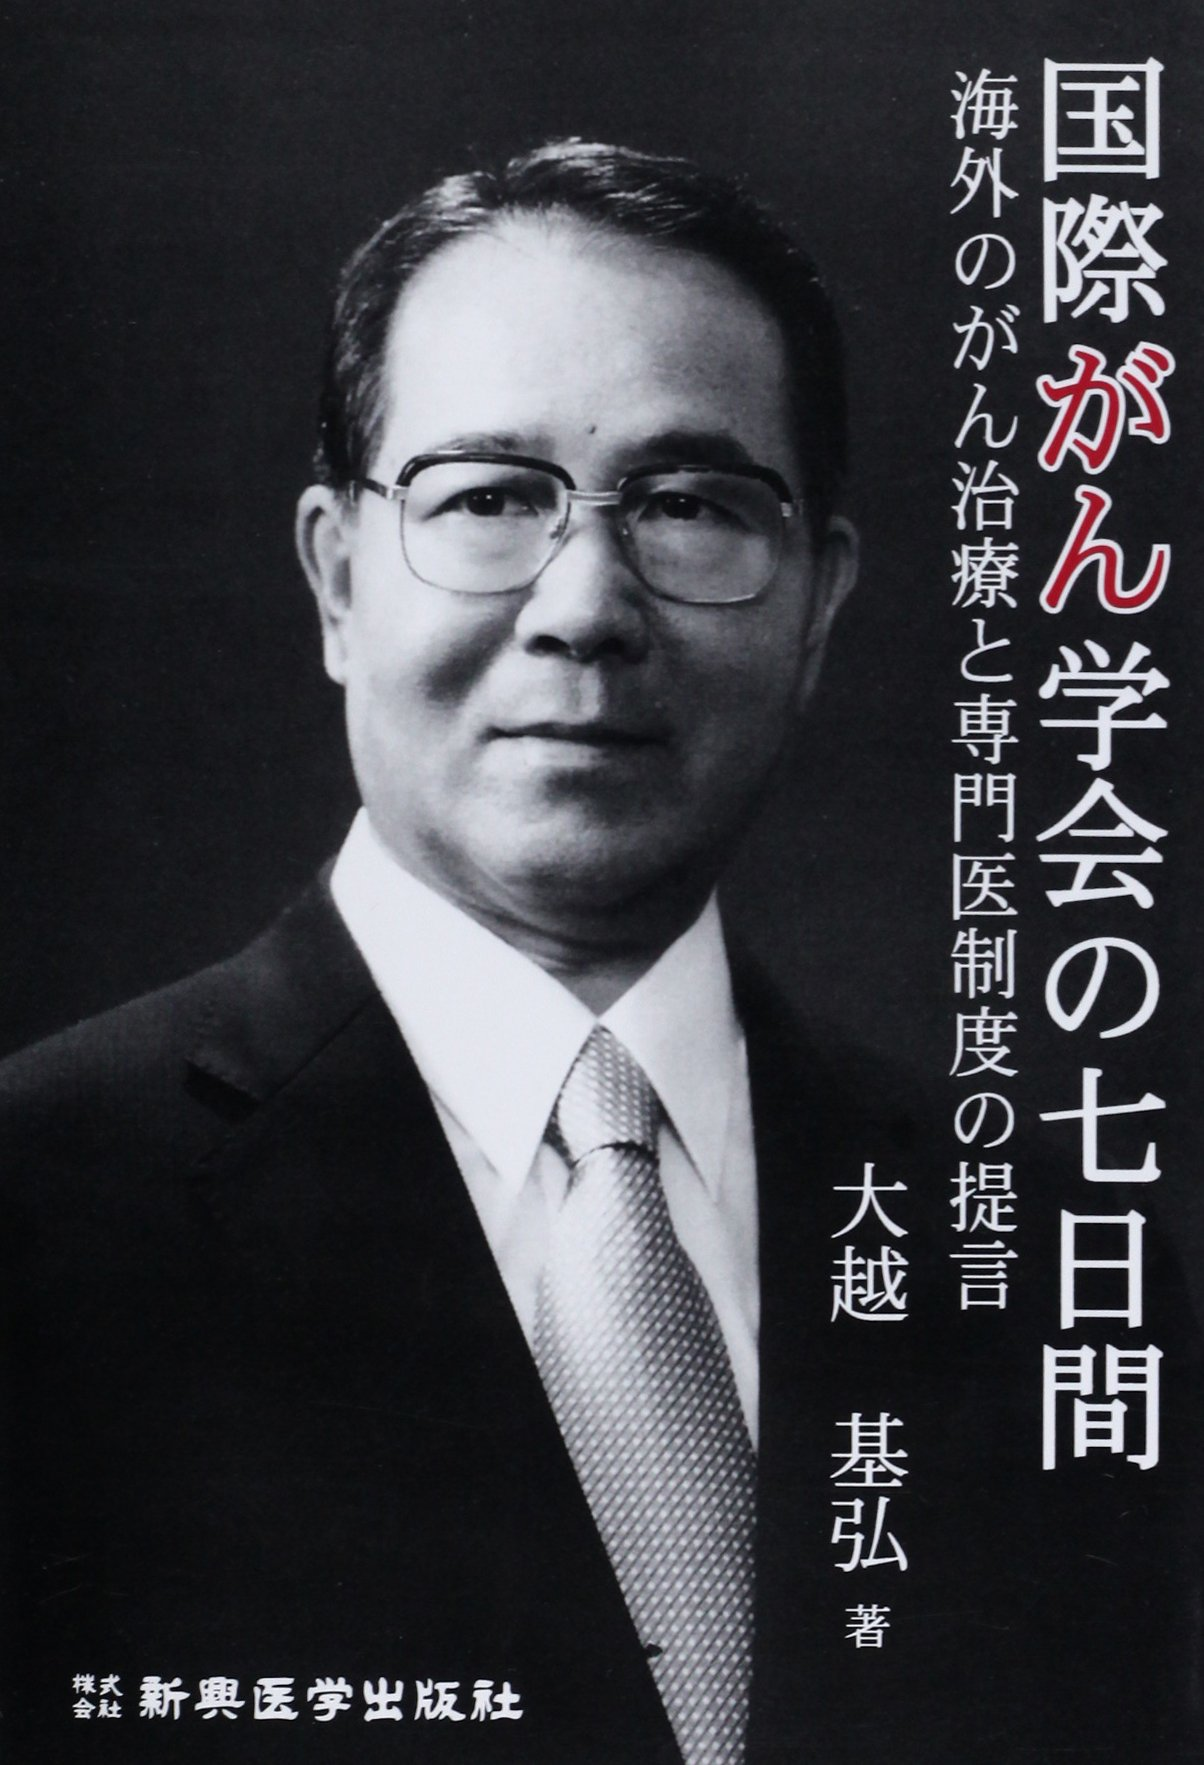 Read Online Recommendations of the specialist system and cancer treatment abroad - seven days of the International Association for Cancer Research (2007) ISBN: 4880024937 [Japanese Import] ebook